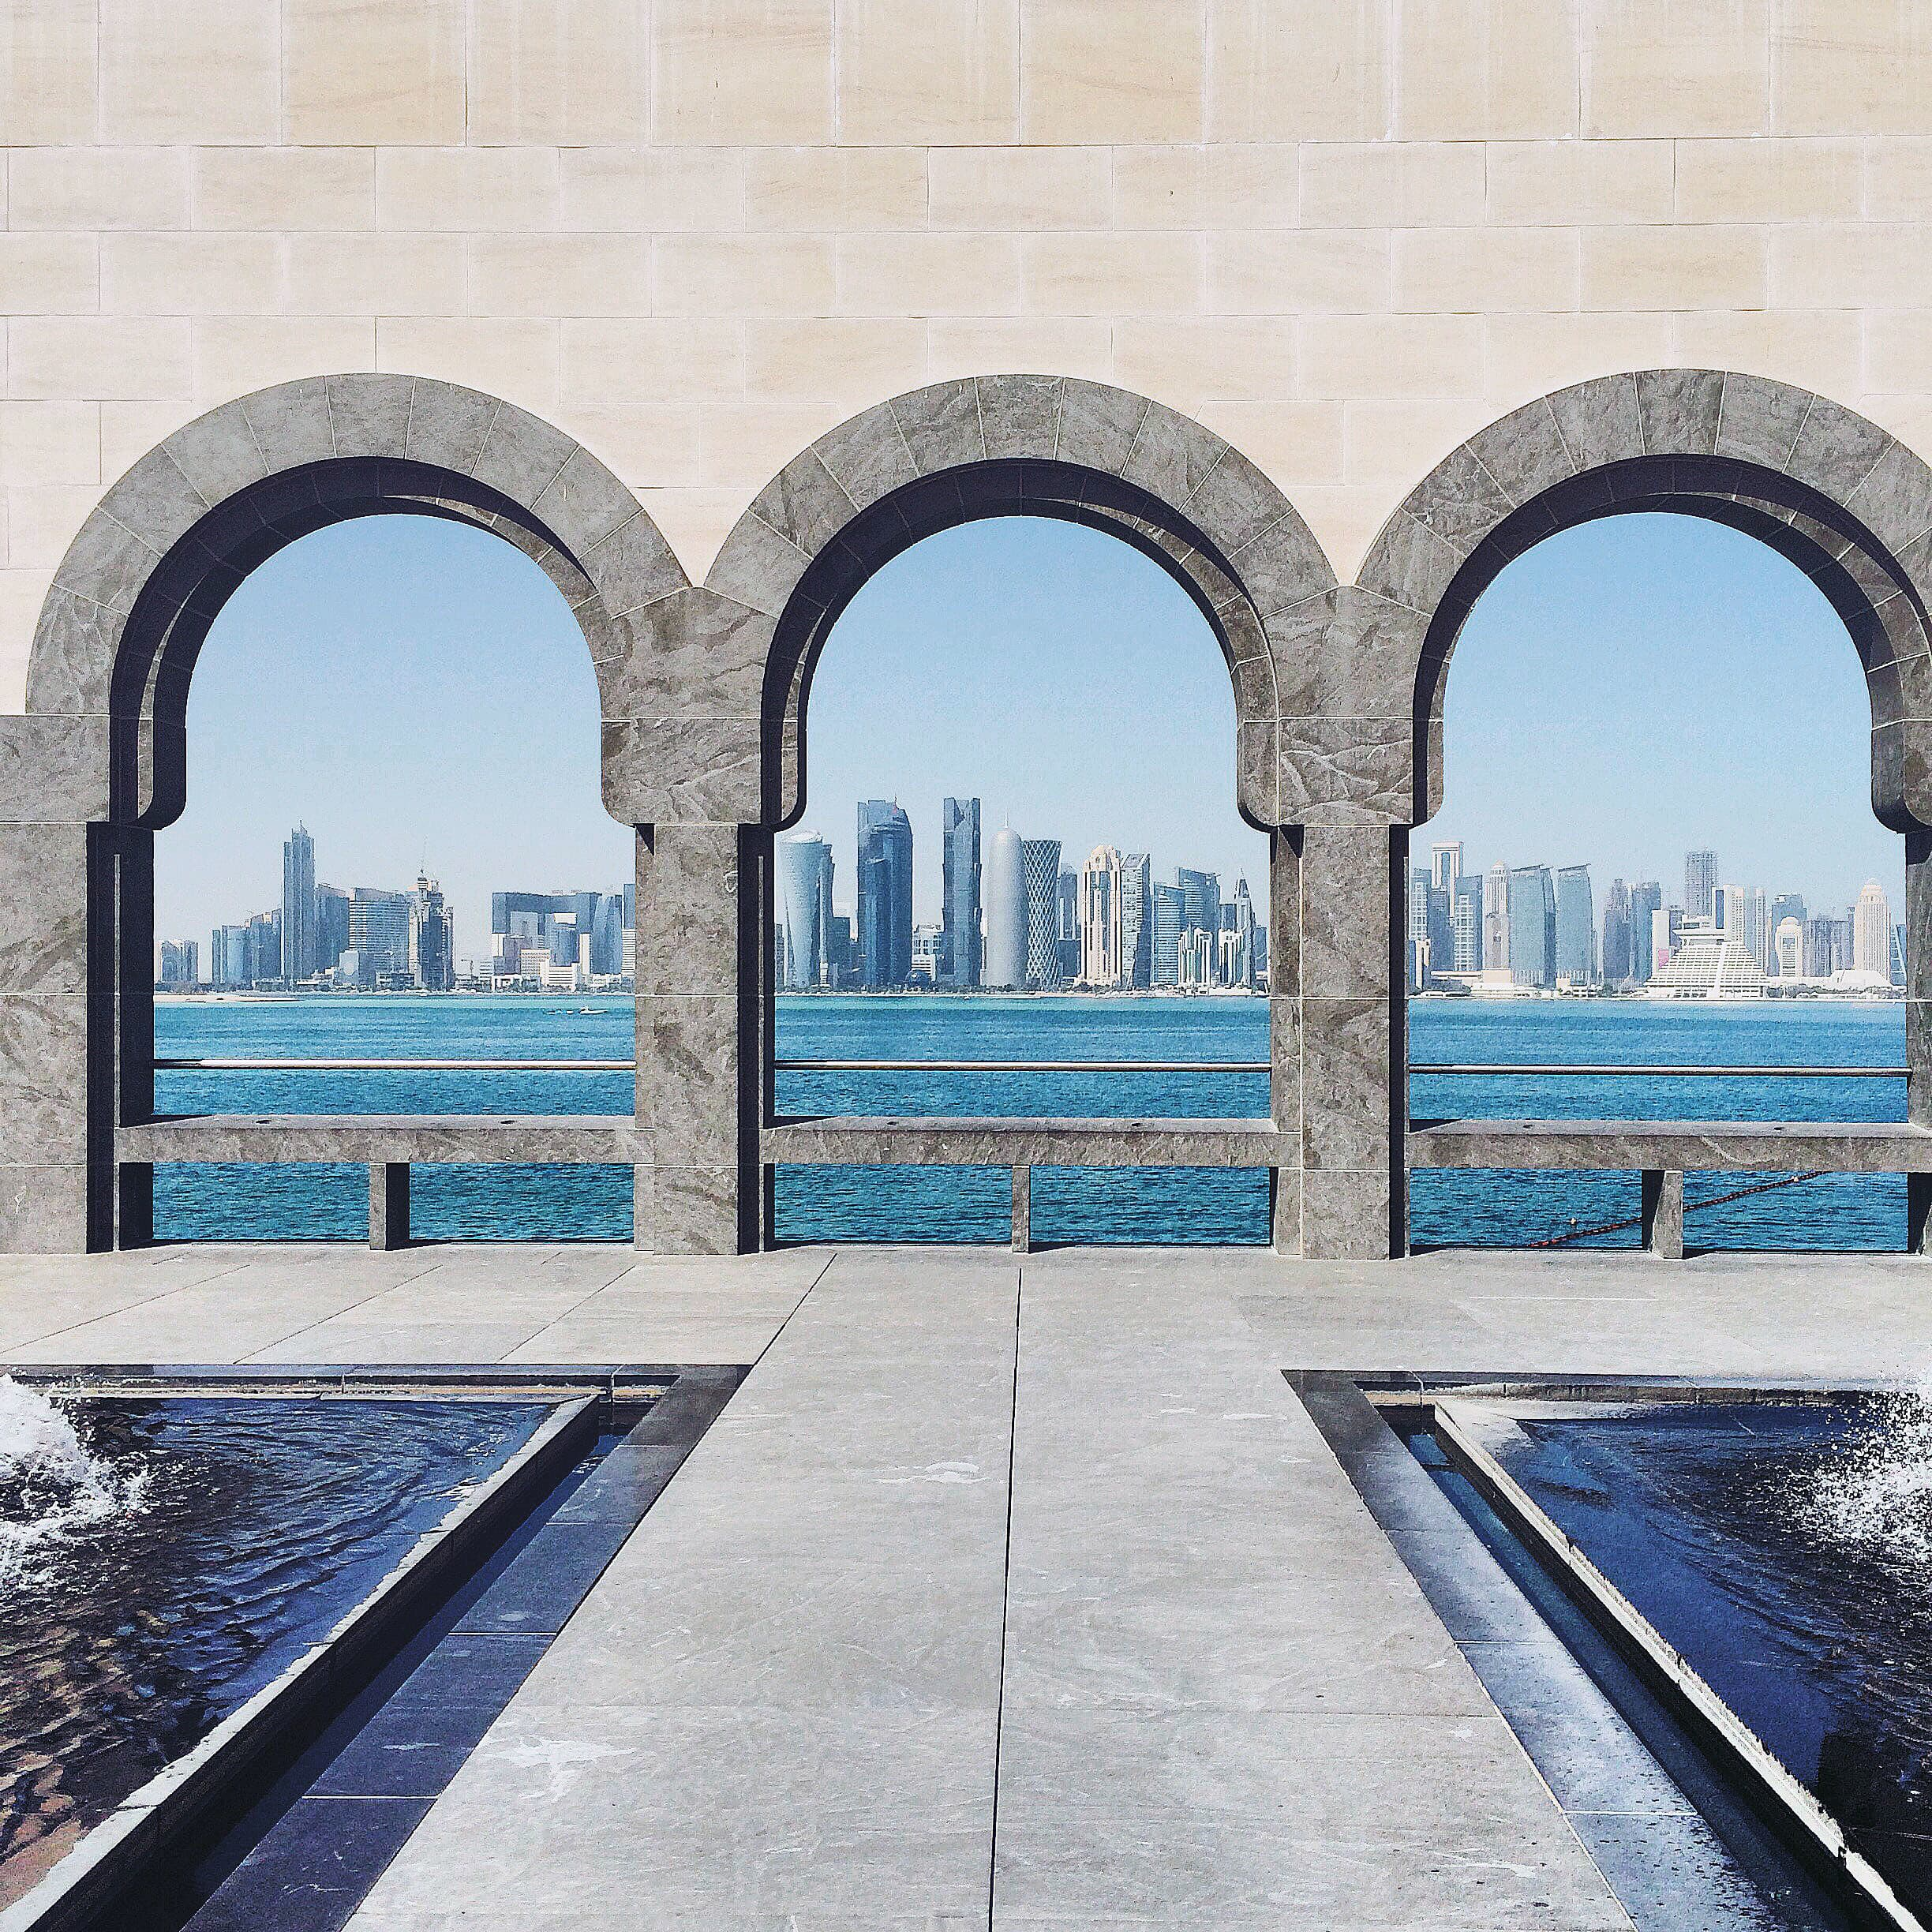 Built on reclaimed land, the area around the MIA offers some of the most glorious views of the Doha skyline.